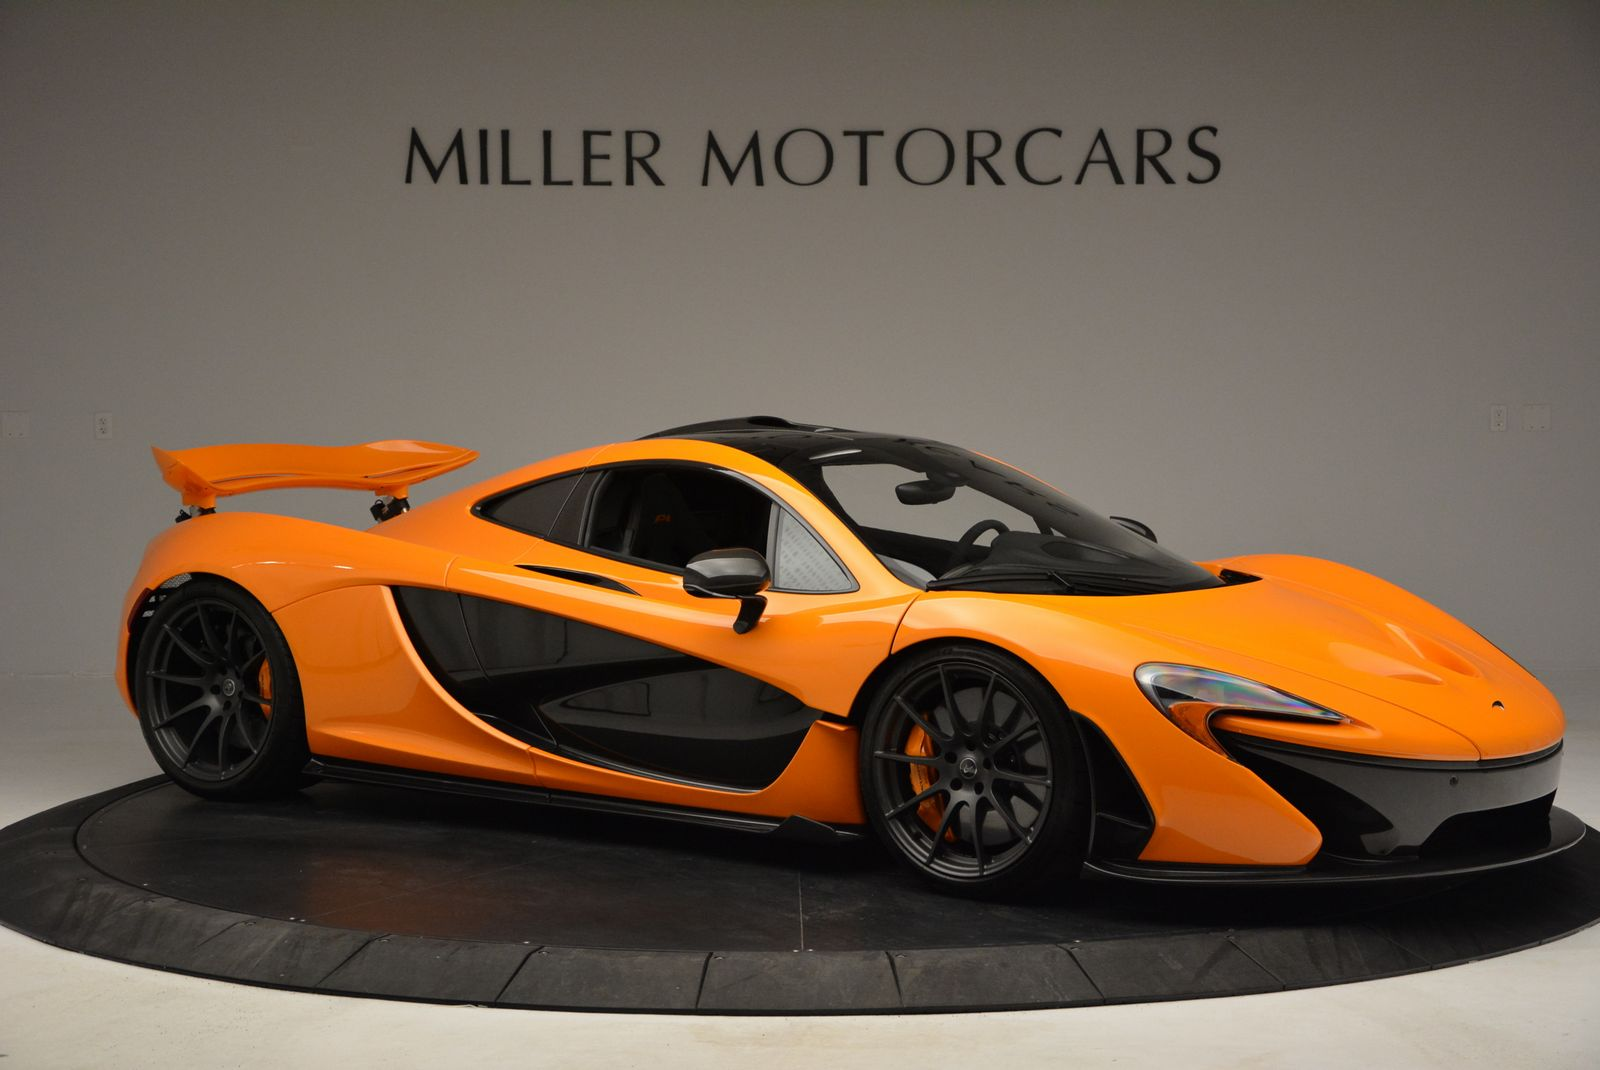 gorgeous mclaren p1 for sale from miller motorcars gtspirit. Black Bedroom Furniture Sets. Home Design Ideas